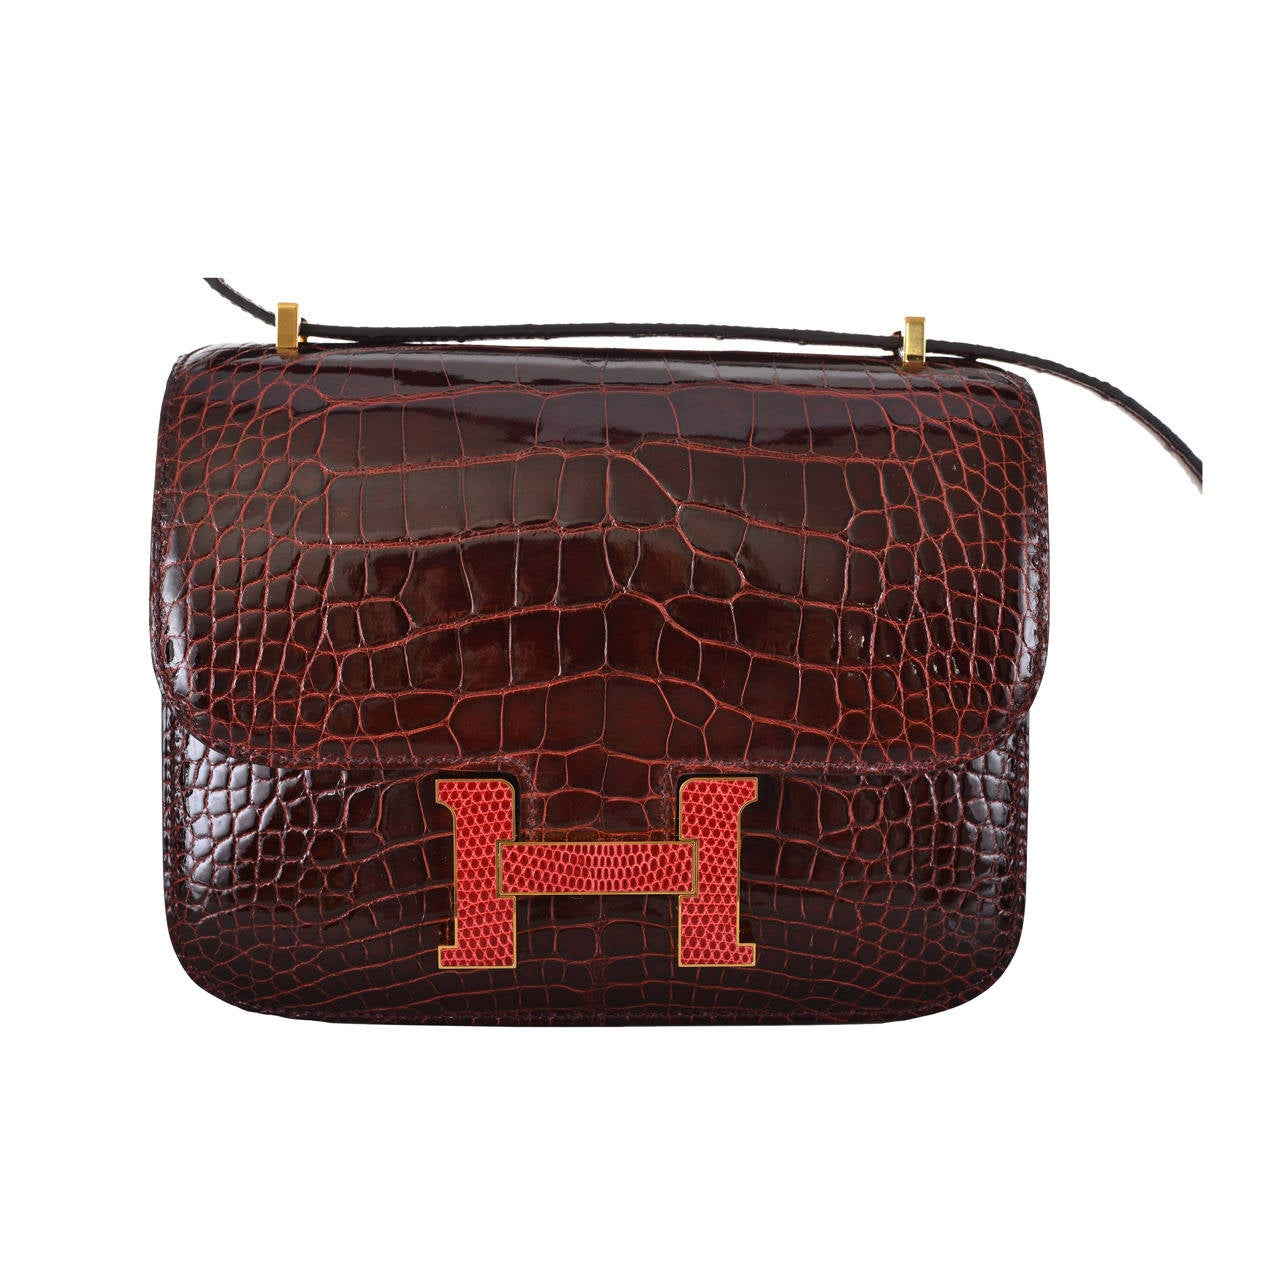 HERMES CONSTANCE BAG ALLIGATOR 18cm BOURGOGNE PINK LIZARD 2 DIE ...